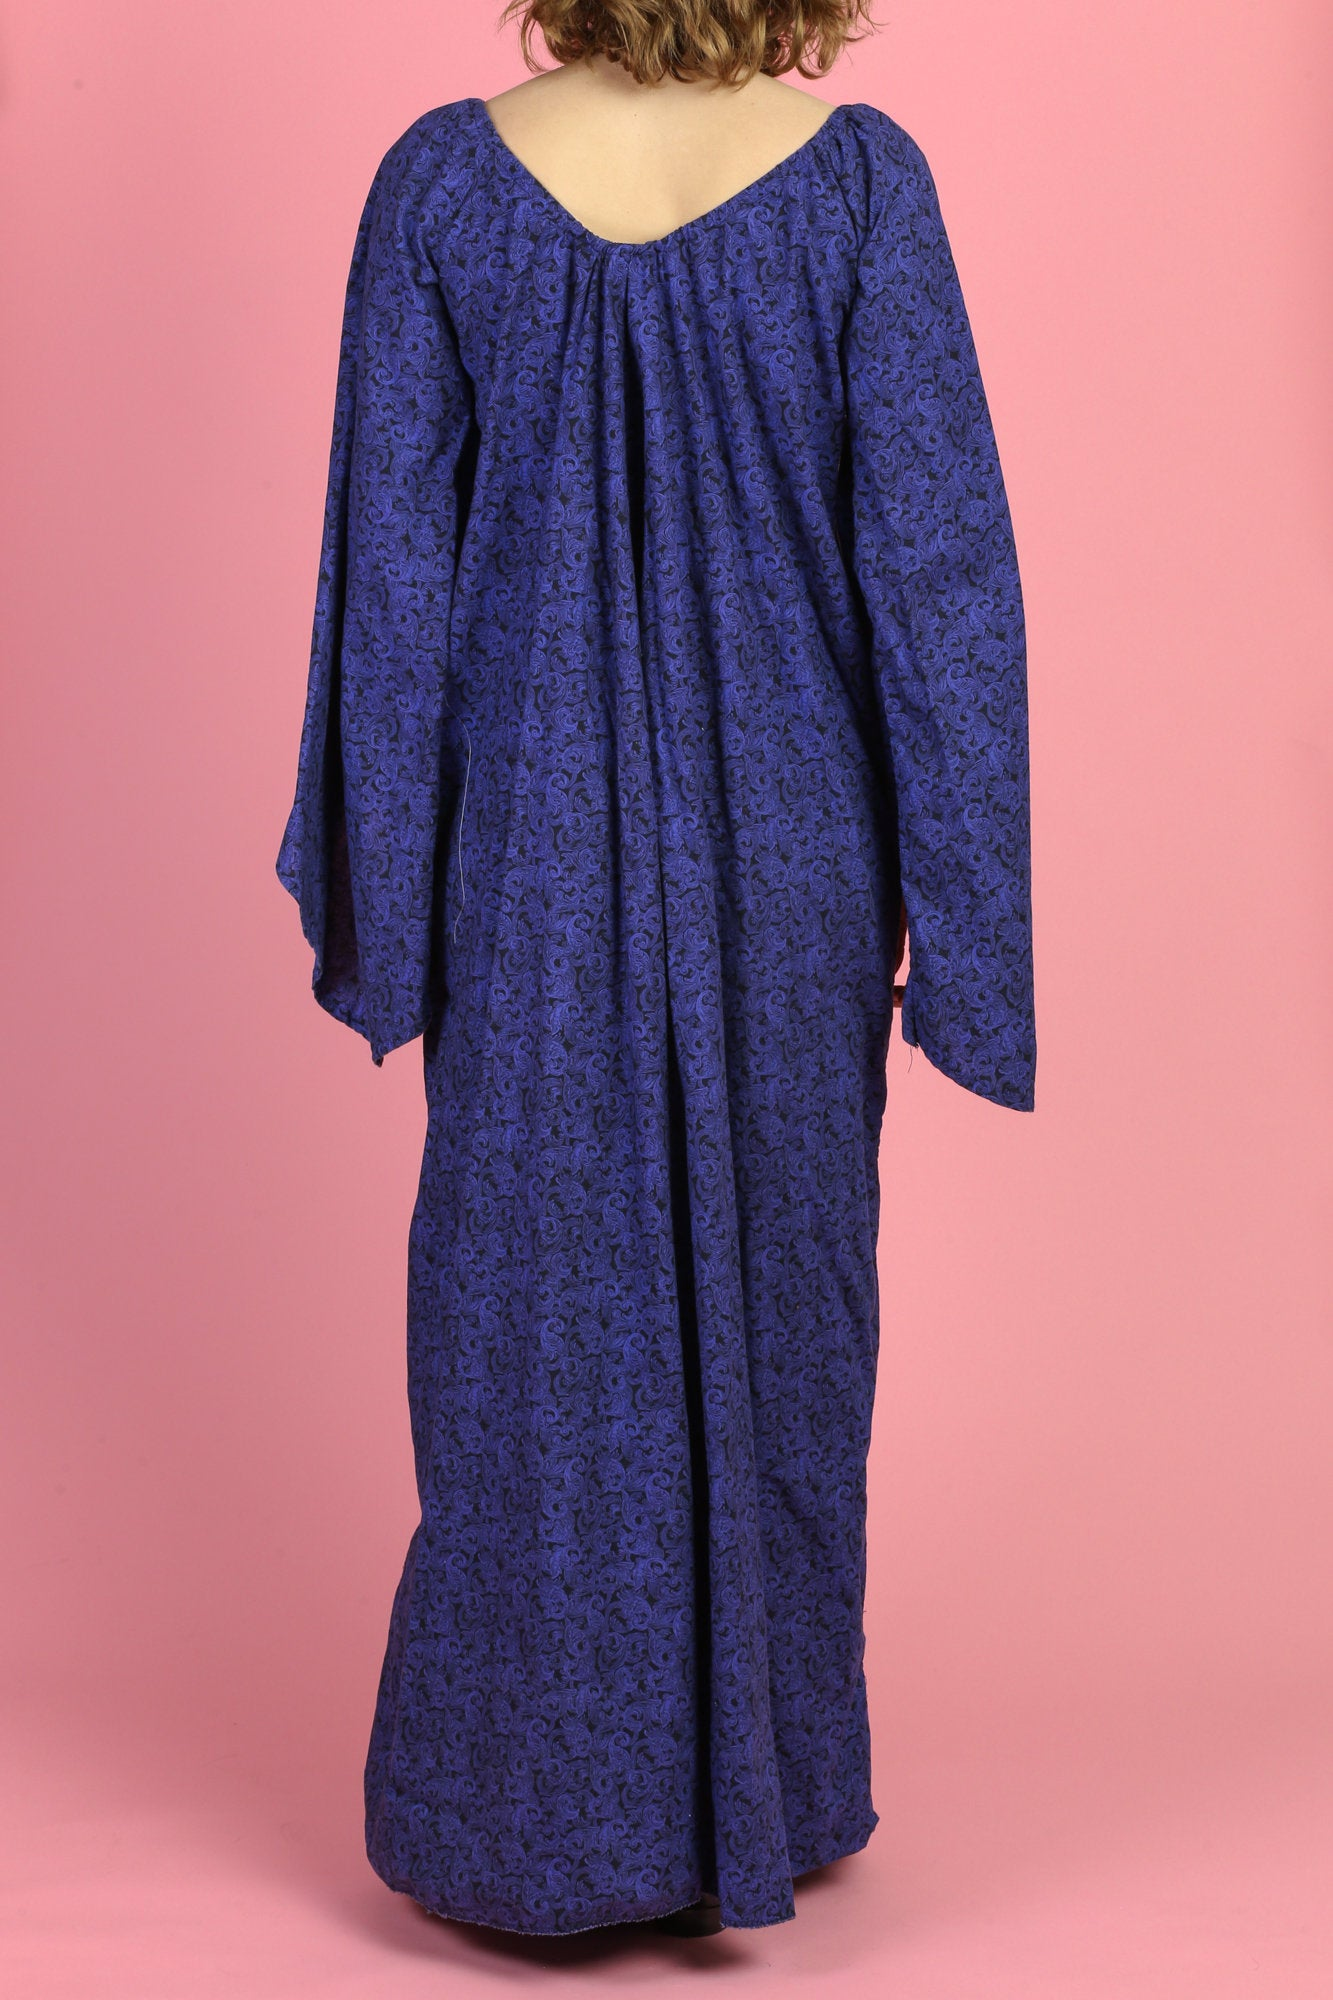 Vintage Witchy Angel Sleeve Maxi Dress - Extra Small